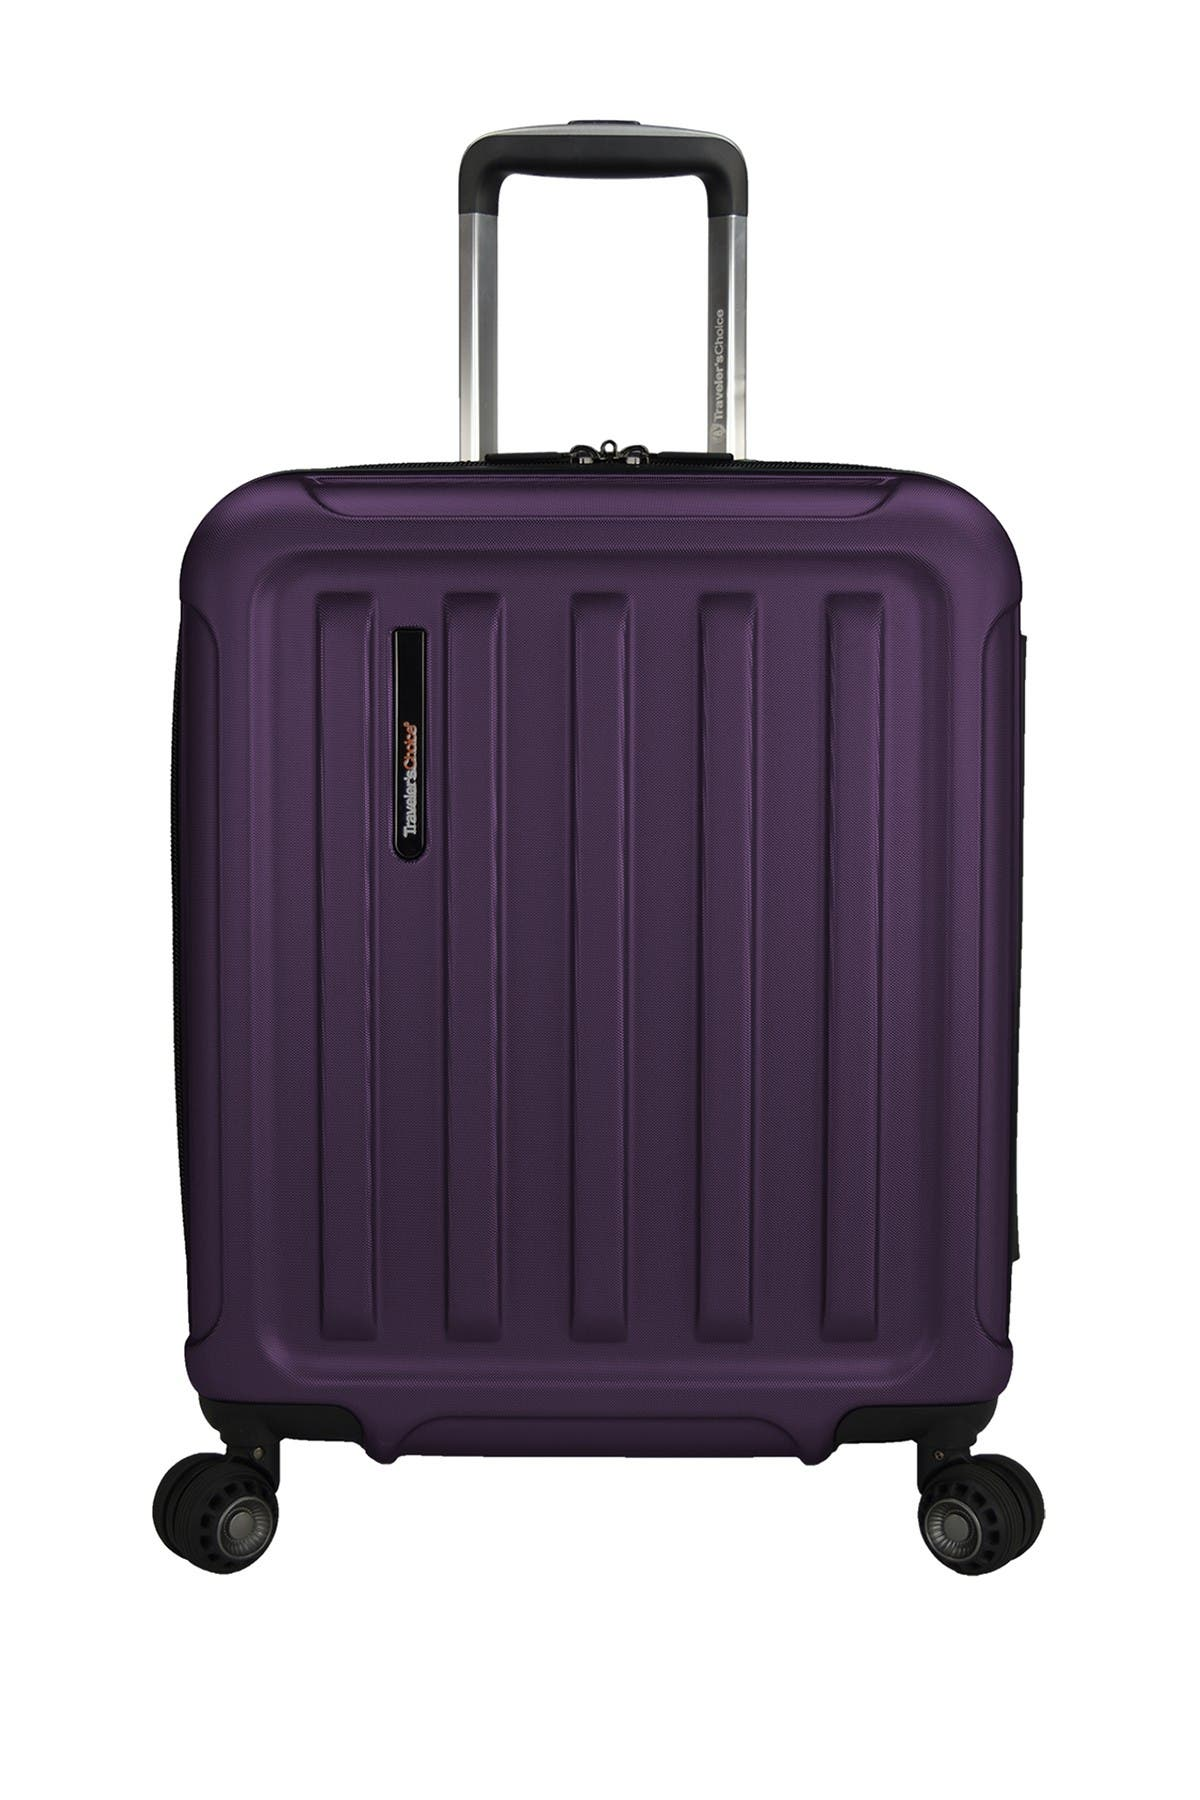 "Image of Traveler's Choice The Art of Travel 20"" Carry-On Expandable Spinner Suitcase"